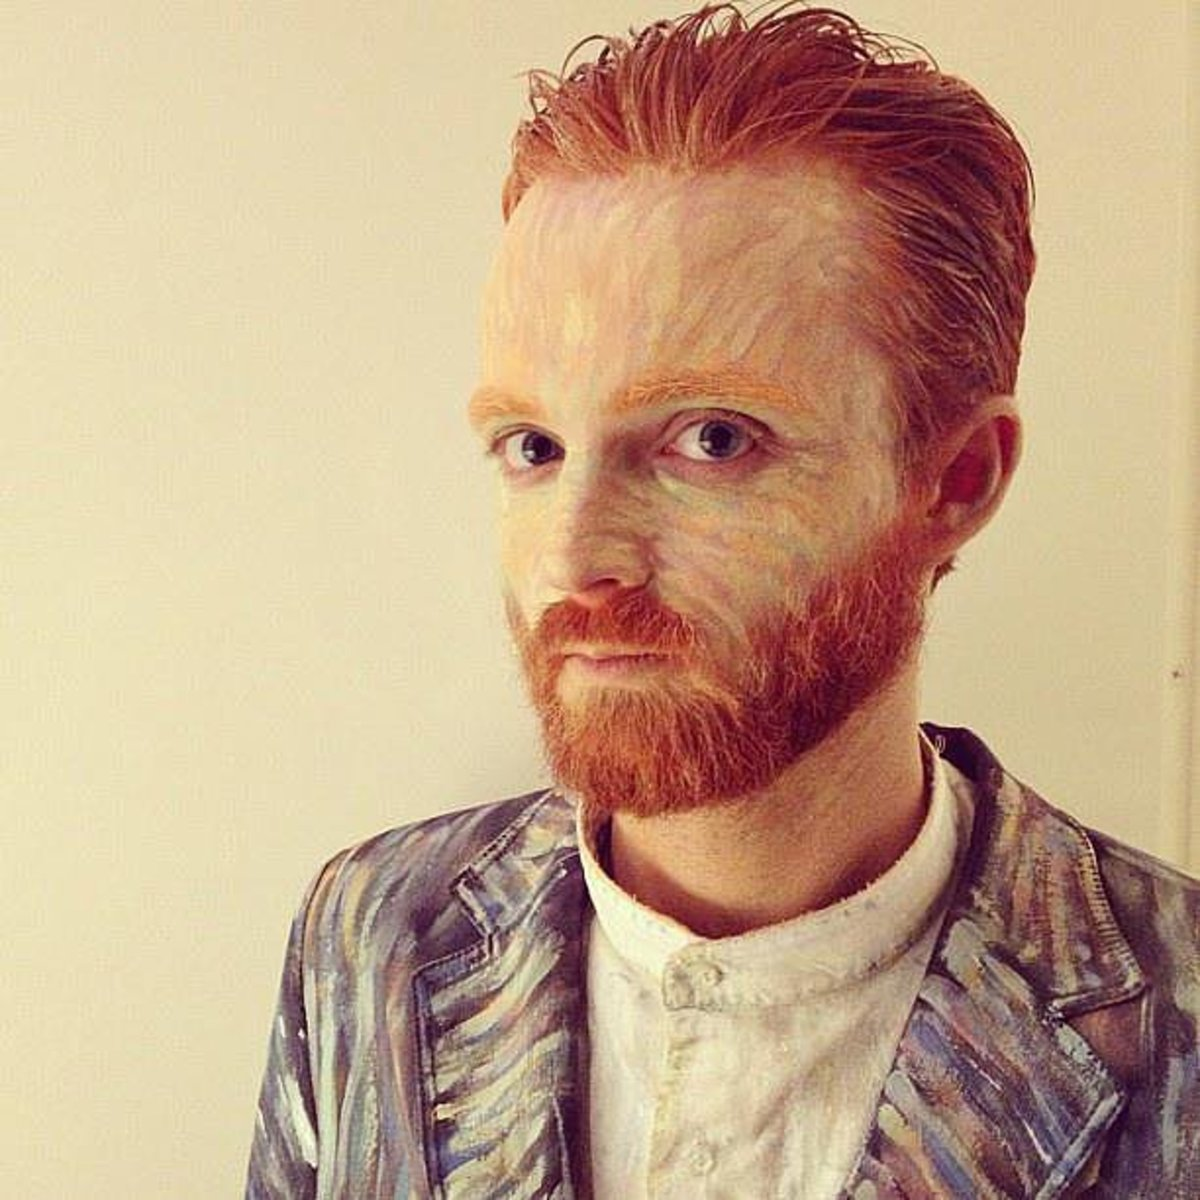 Go dressed up as the artist, Vincent van Gogh